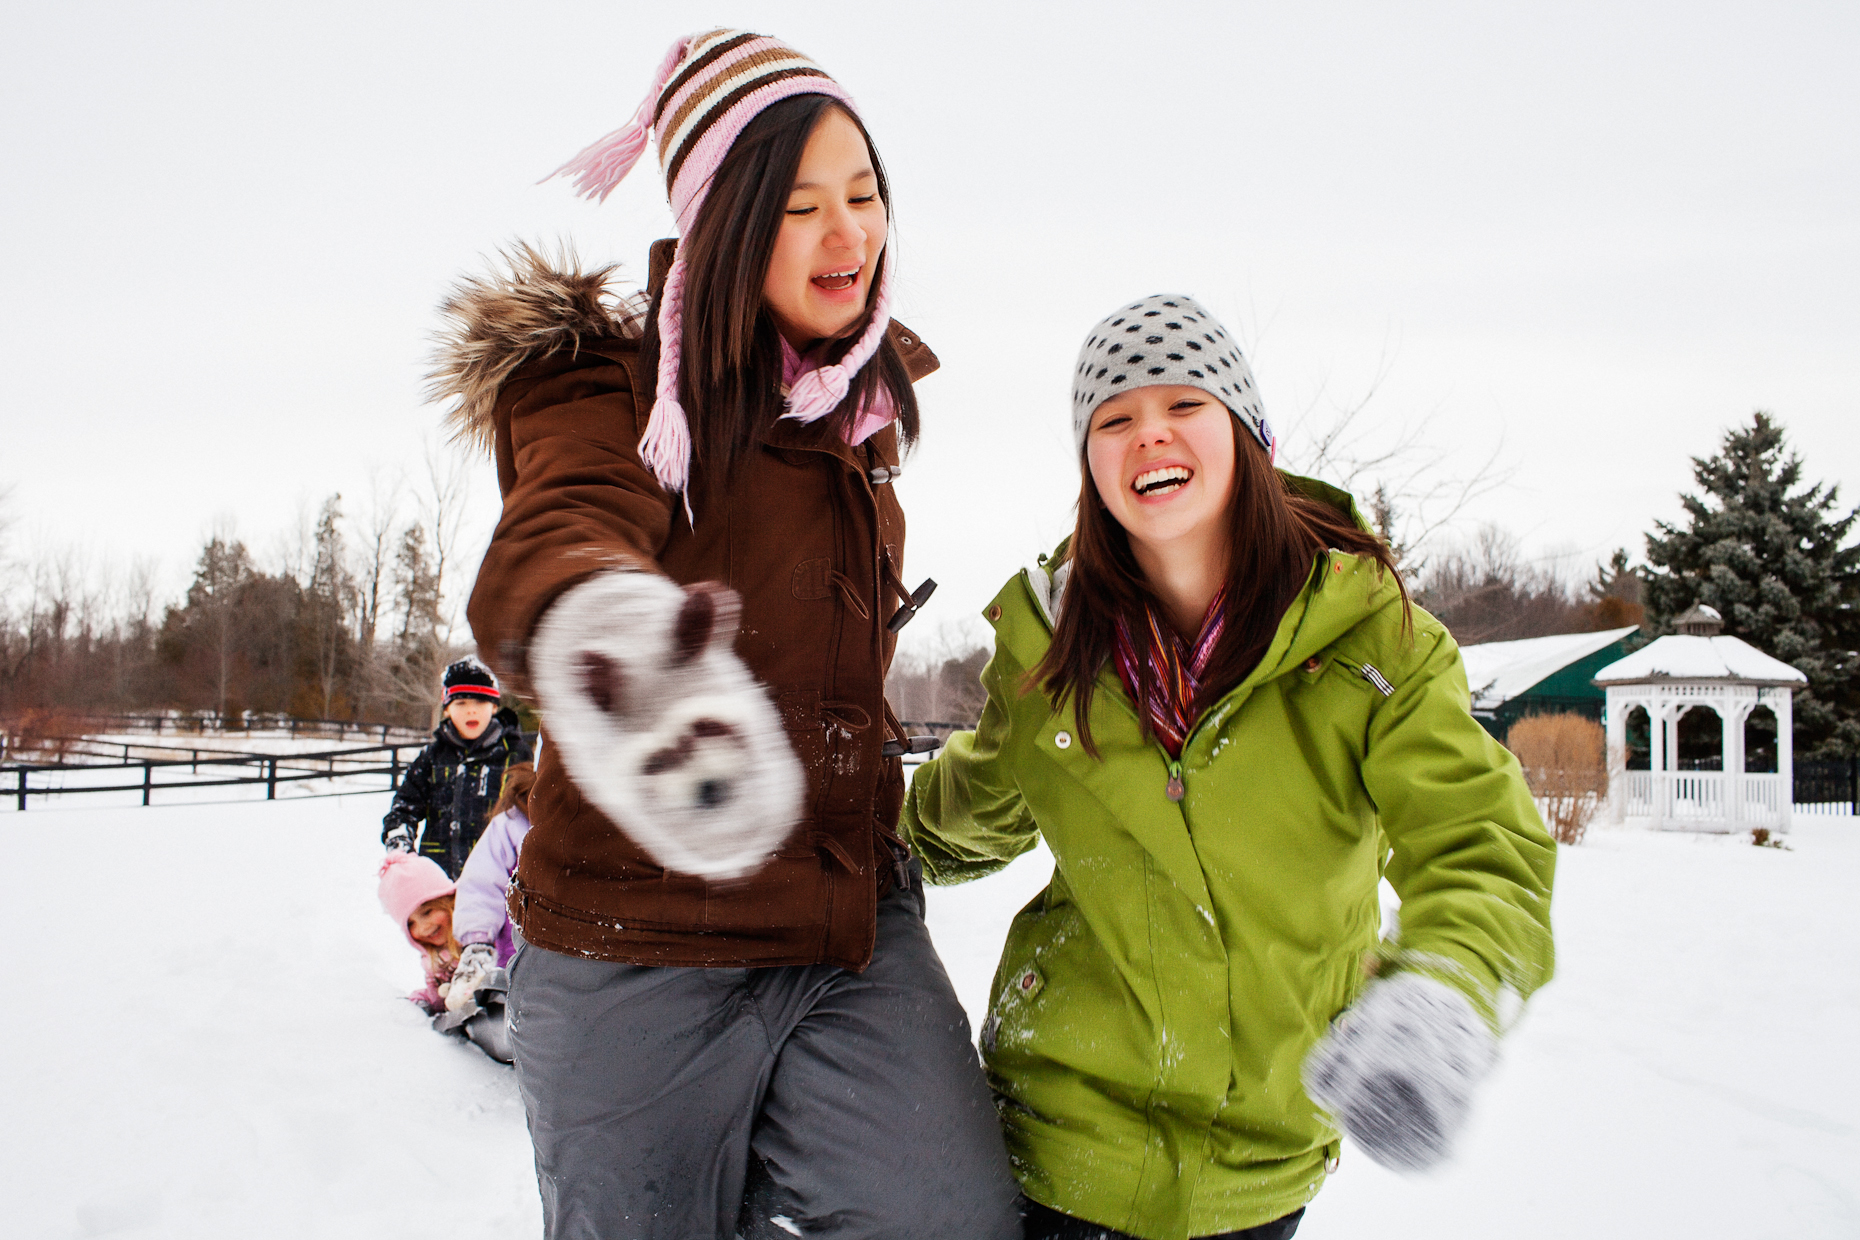 ice_skating_girls_playing_snow-2.jpg